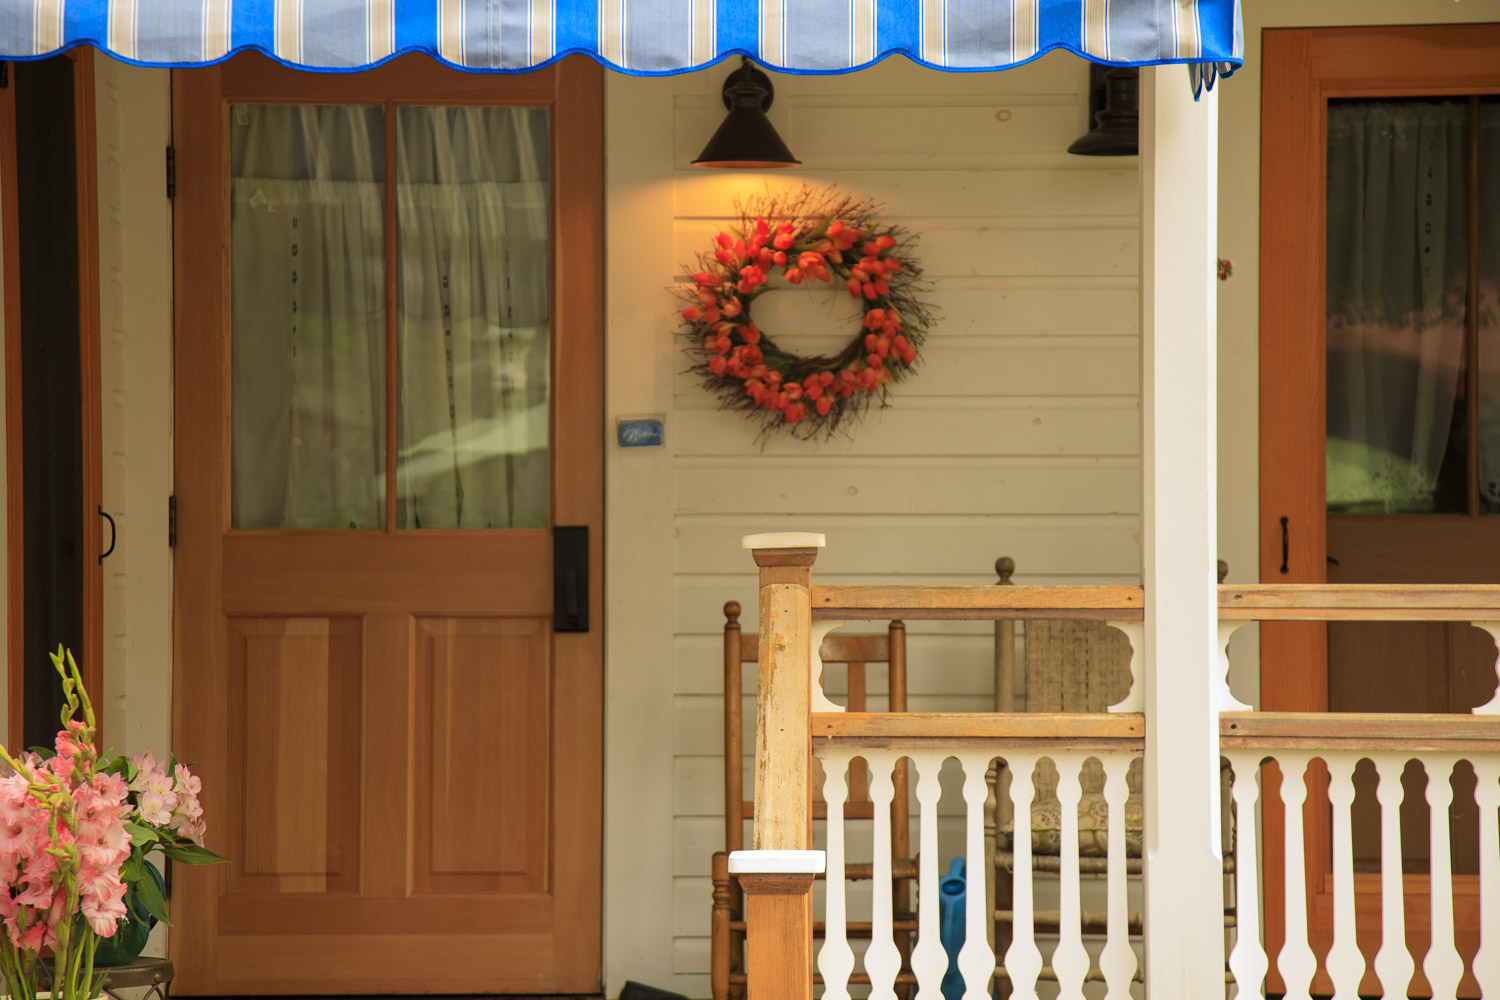 One of many way too cute for words houses. Chautauqua homes feature porches, lots of them, gingerbread, and flowers!